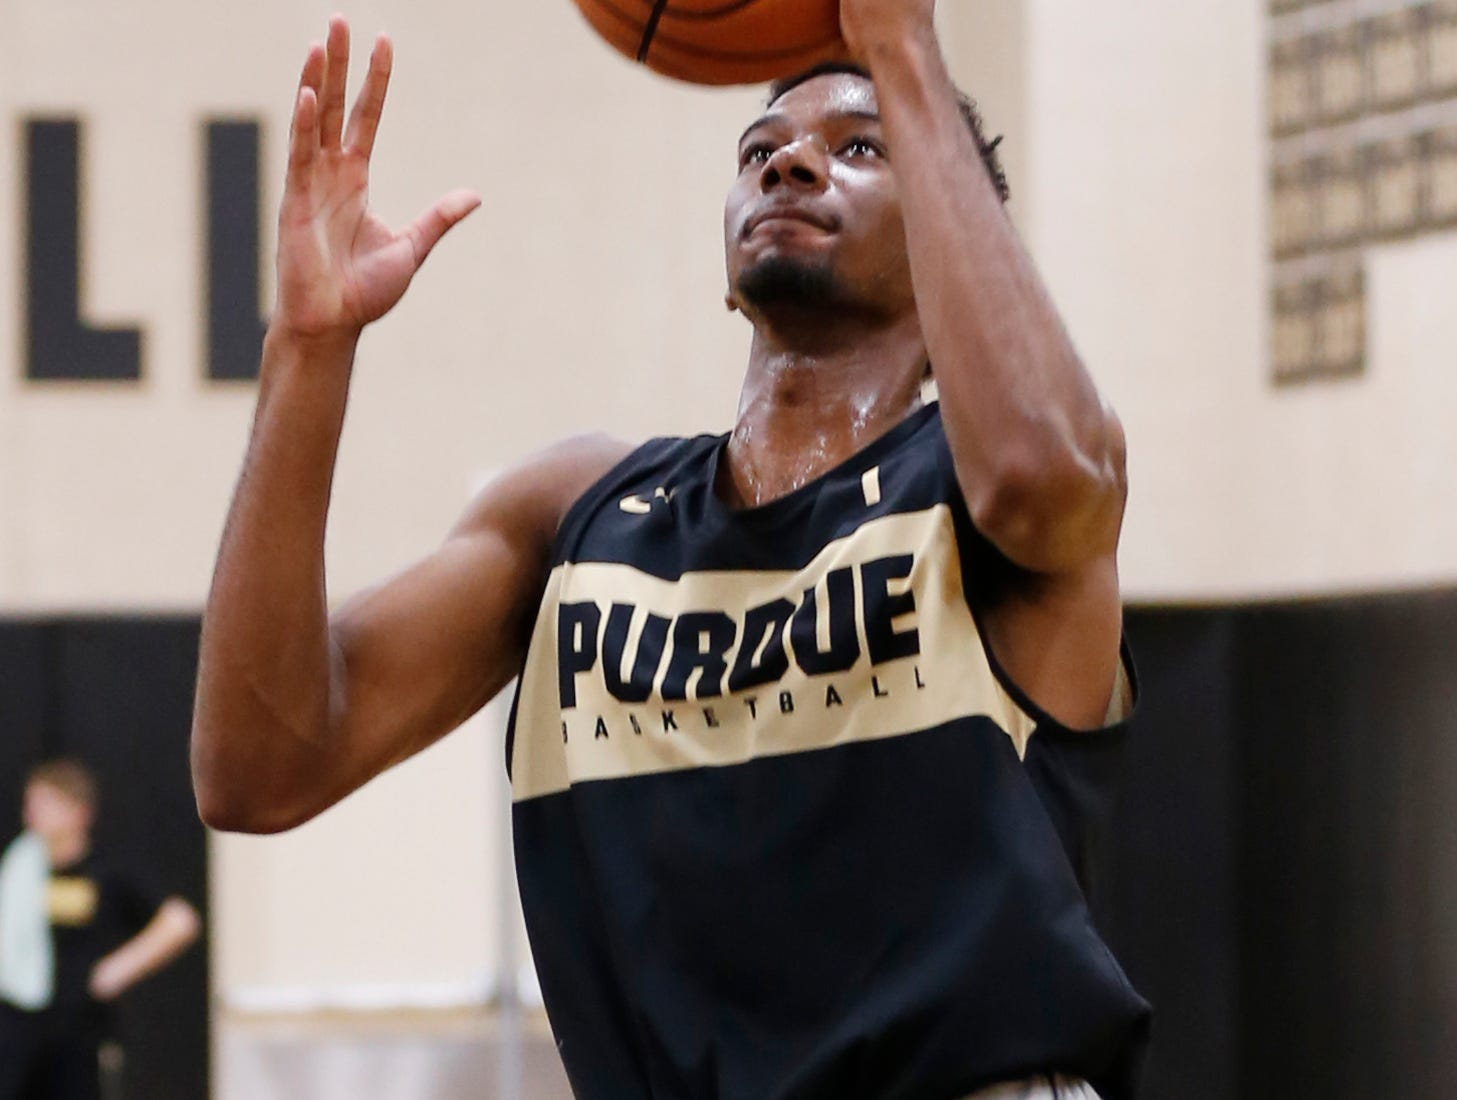 Aaron Wheeler with a layup during the first official practice of the season for Purdue men's basketball Tuesday, September 25, 2018, at Cardinal Court in Mackey Arena.